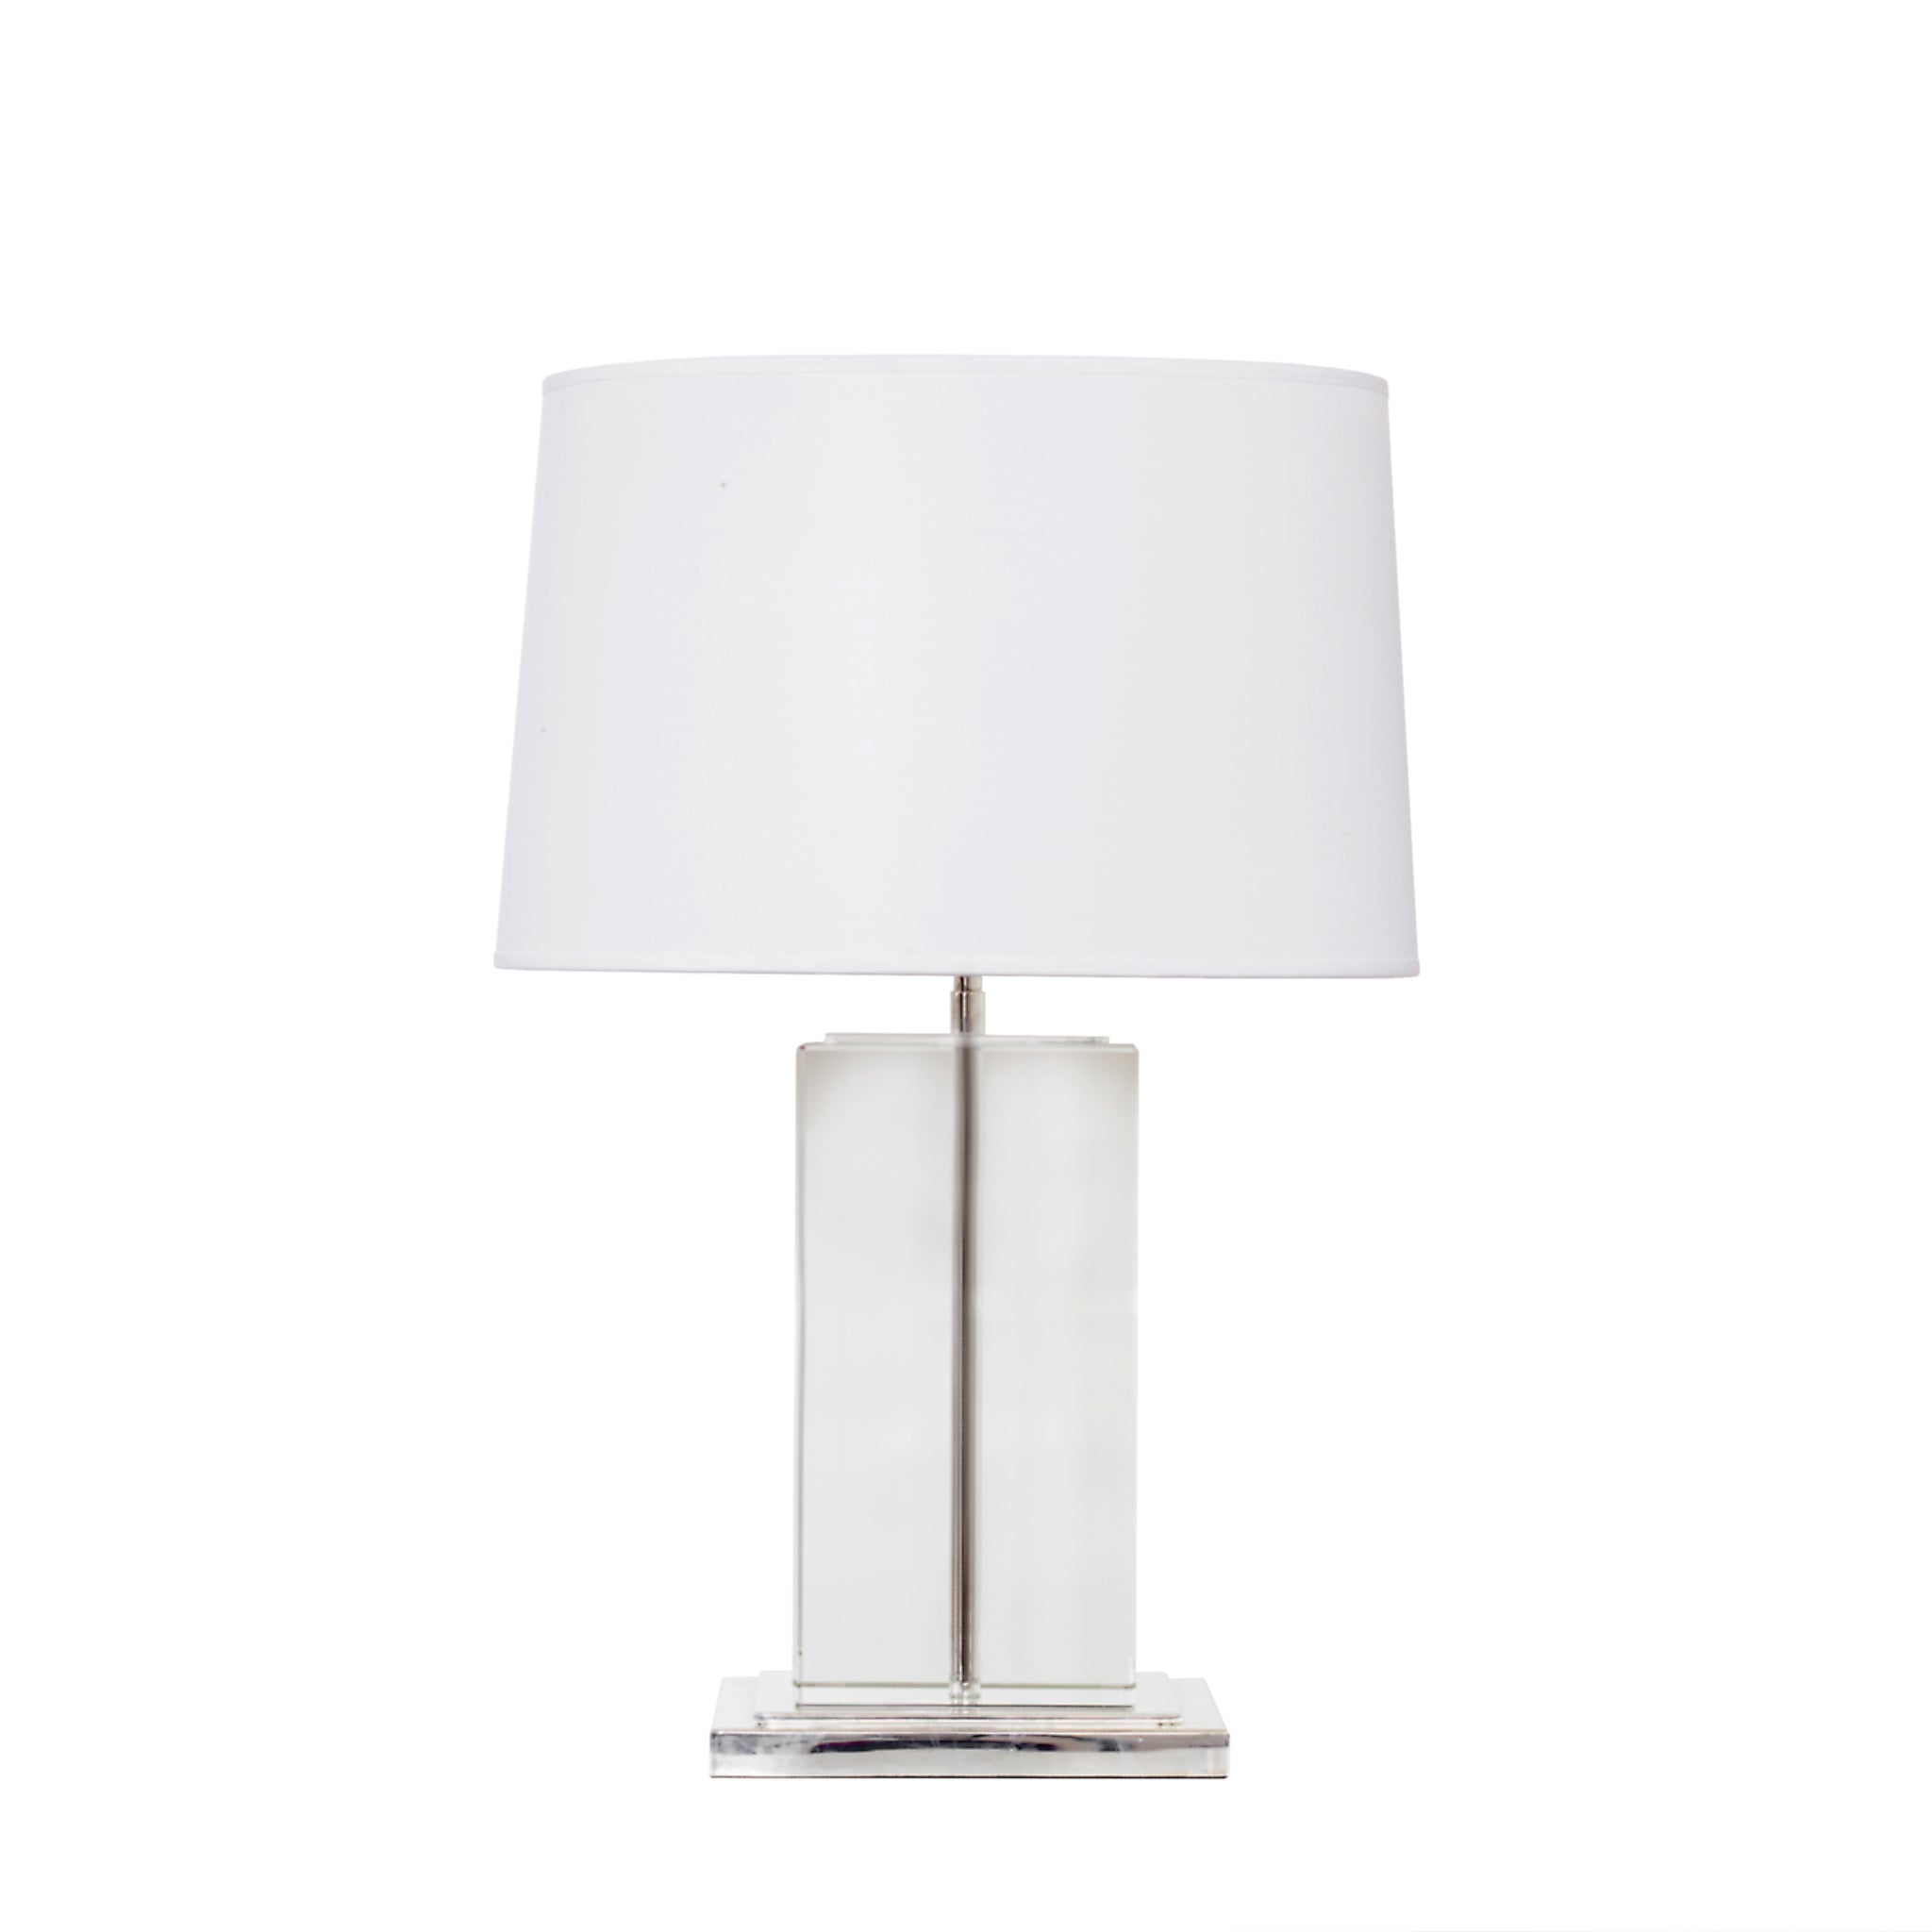 Small Block Table Lamp in Crystal with Polished Silver with Cotton Shade